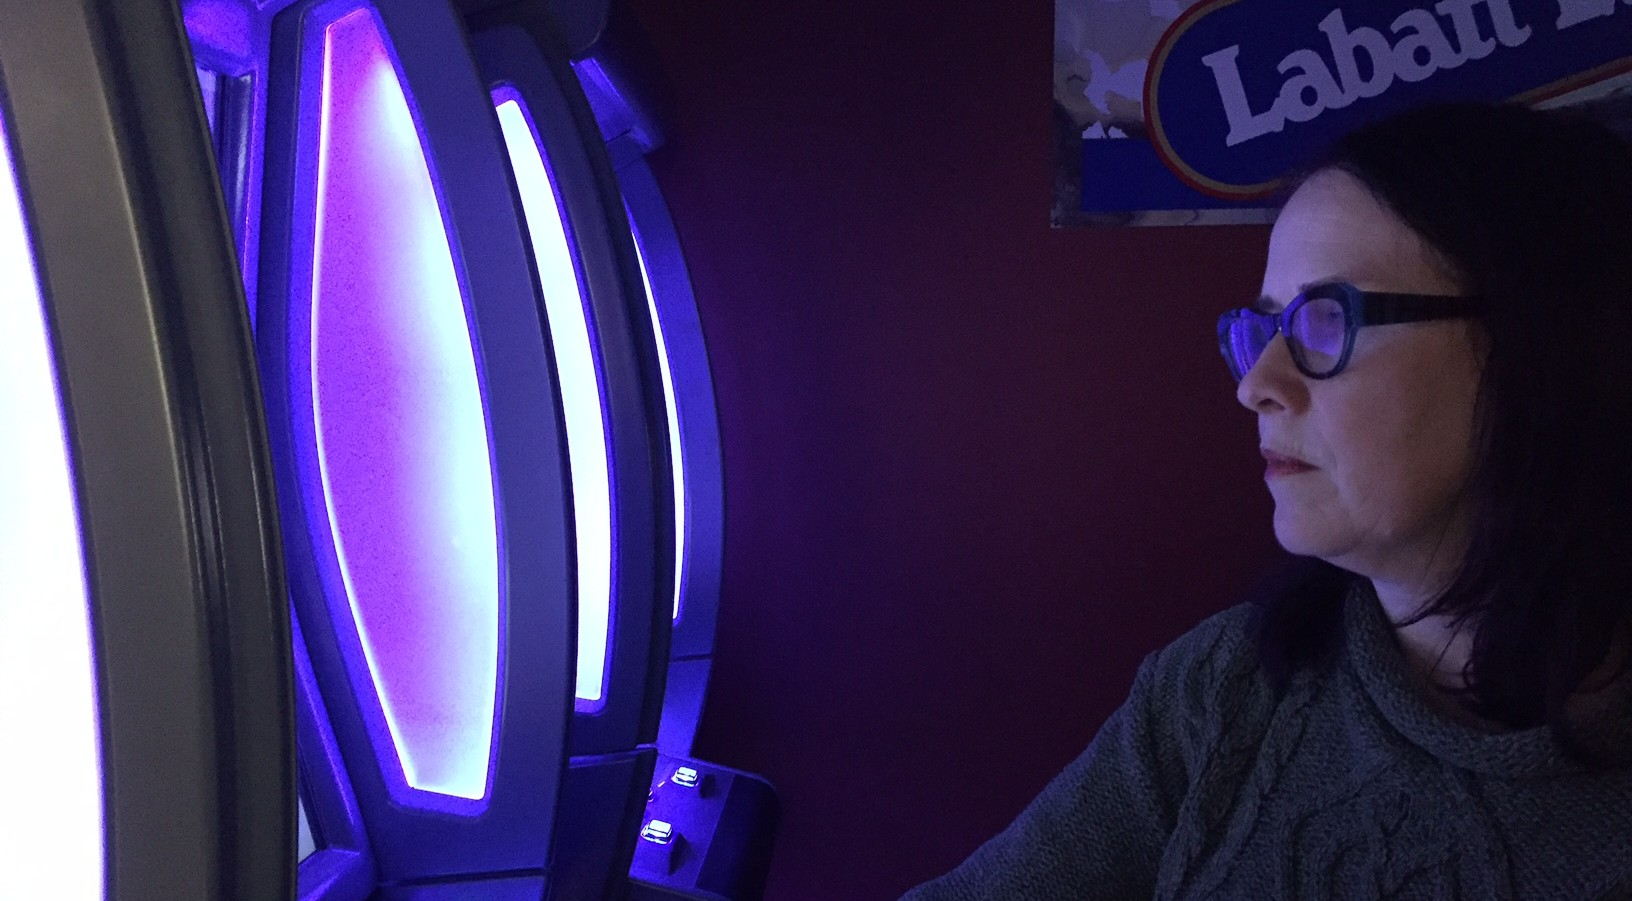 Dr. Sherry Stewart faces a VLT at the Gambling Lab, Dalhousie University.